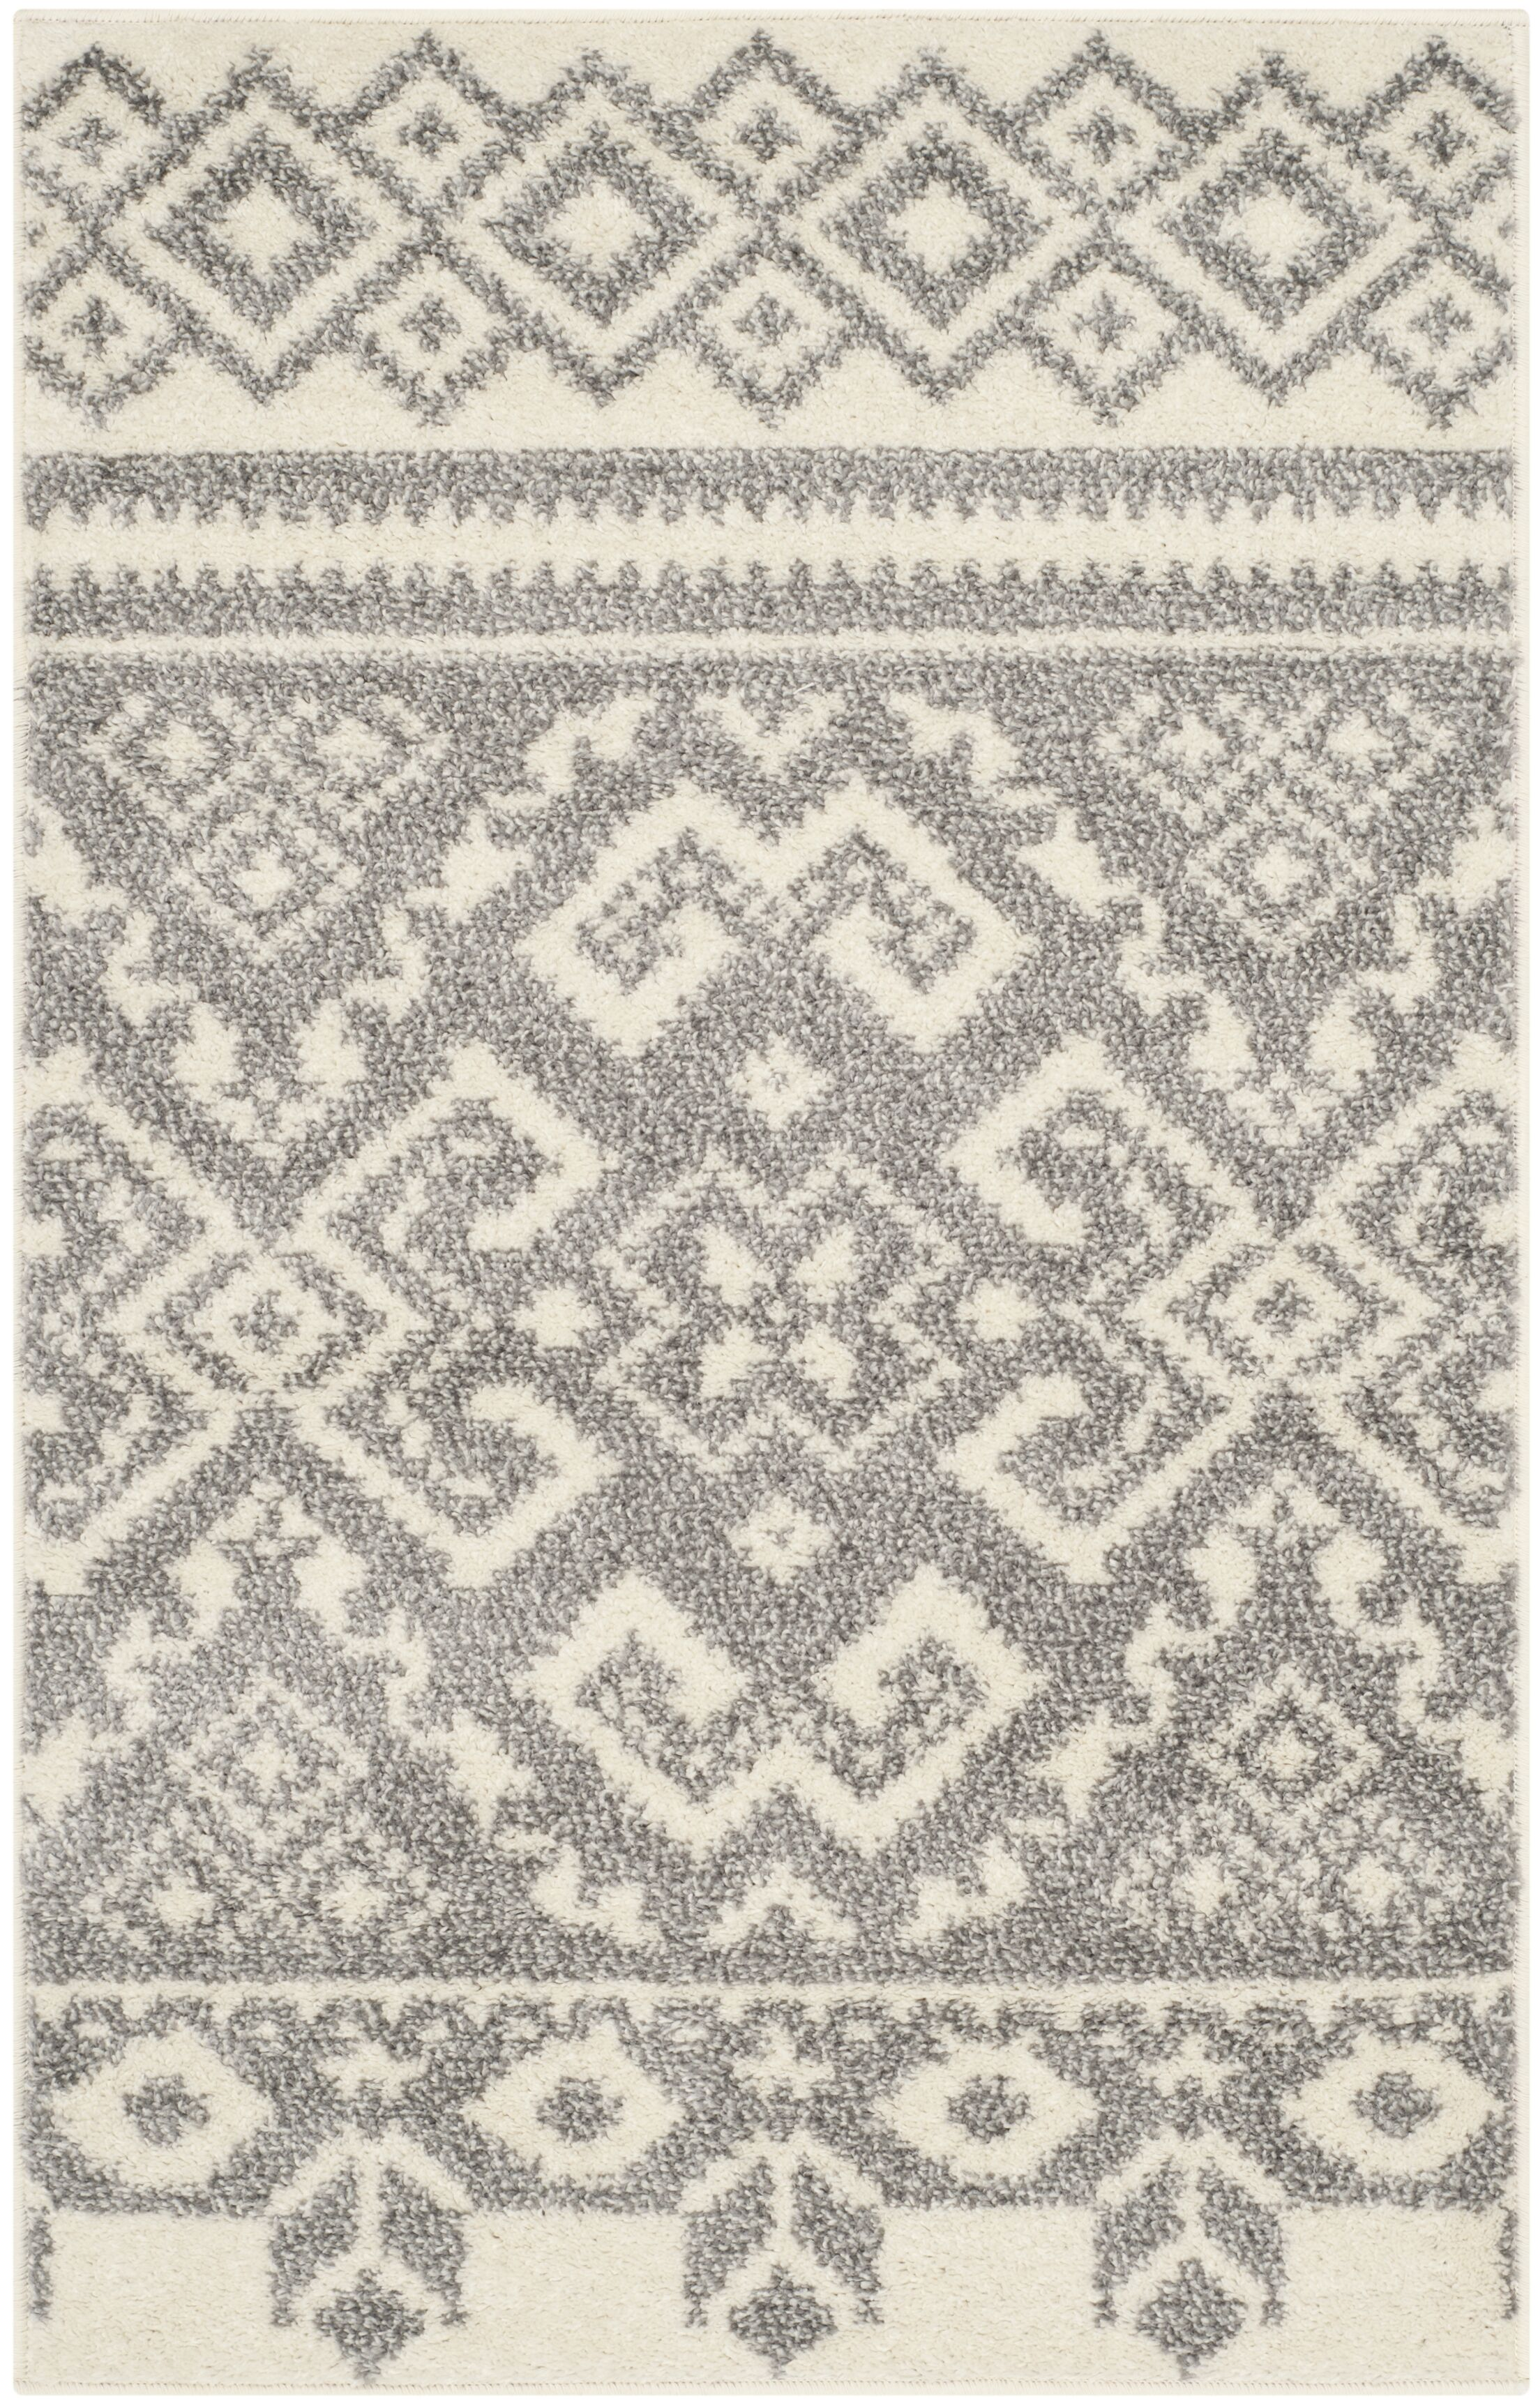 St. Ann Highlands Beige/Silver Area Rug Rug Size: Rectangle 10' x 14'